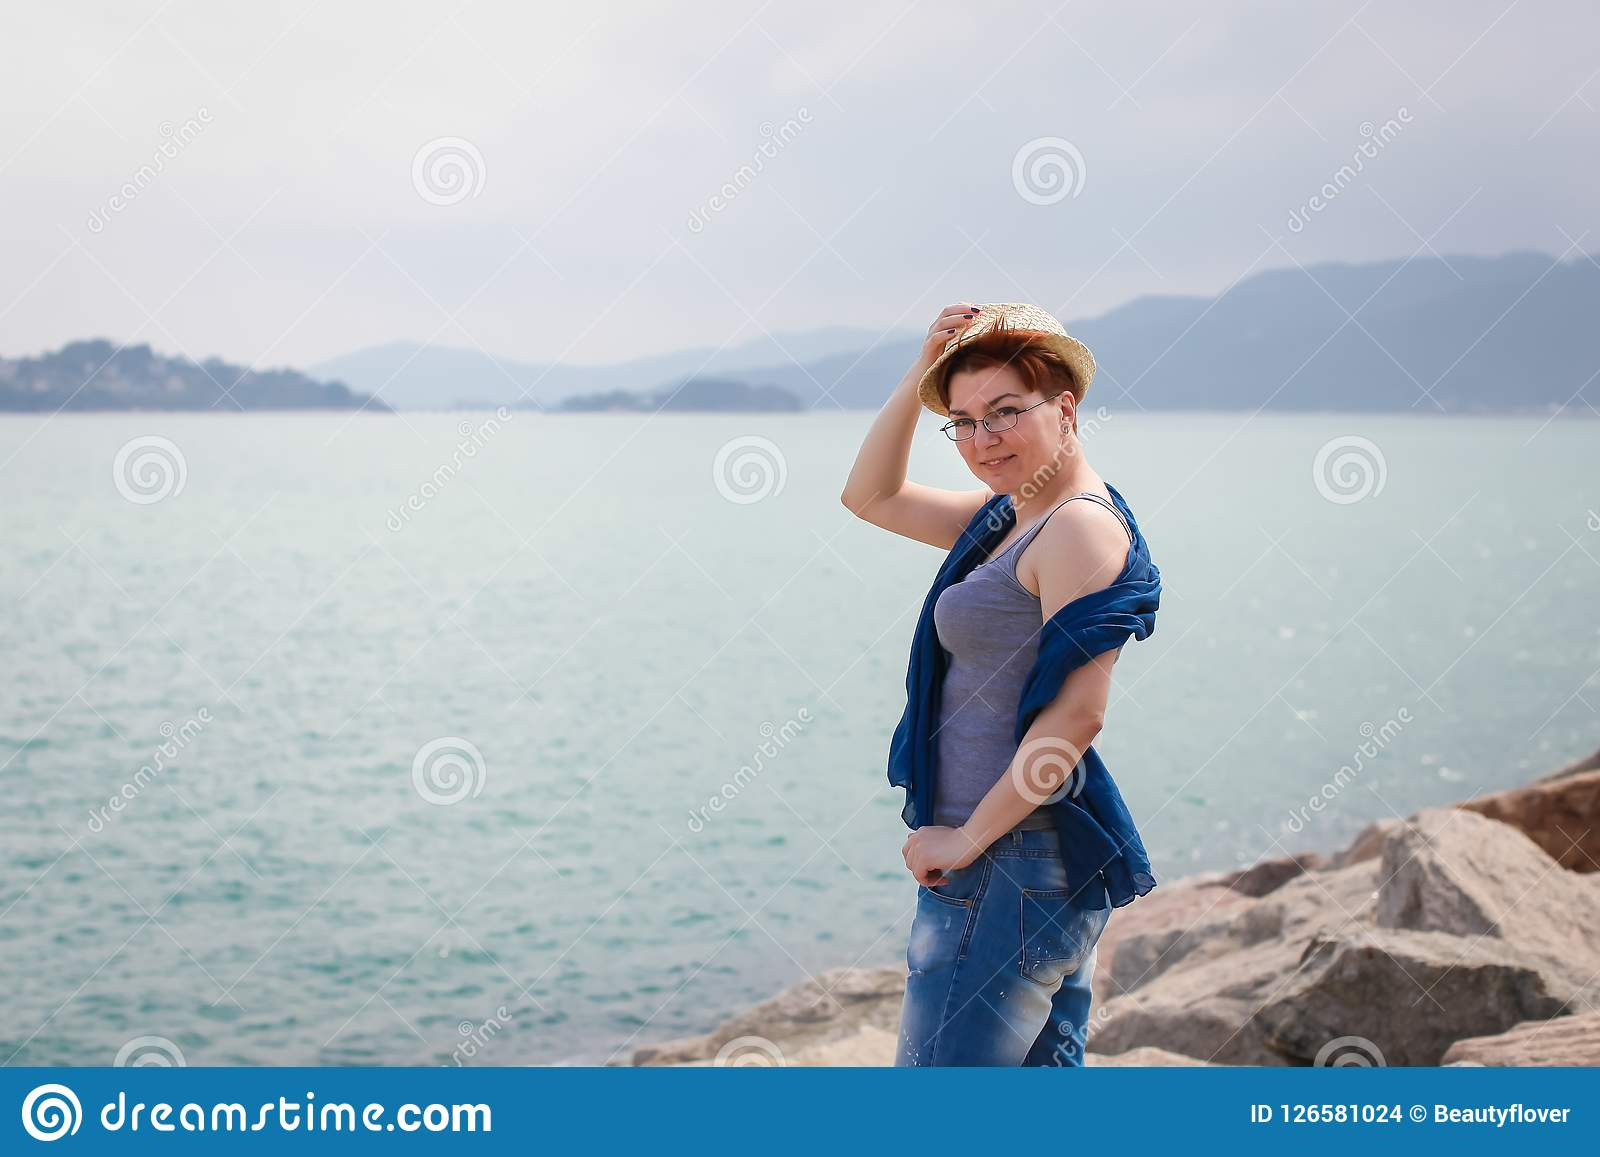 Windy summer days relaxing on coast feeling good. adult woman in glasses and jeans walks on the coast